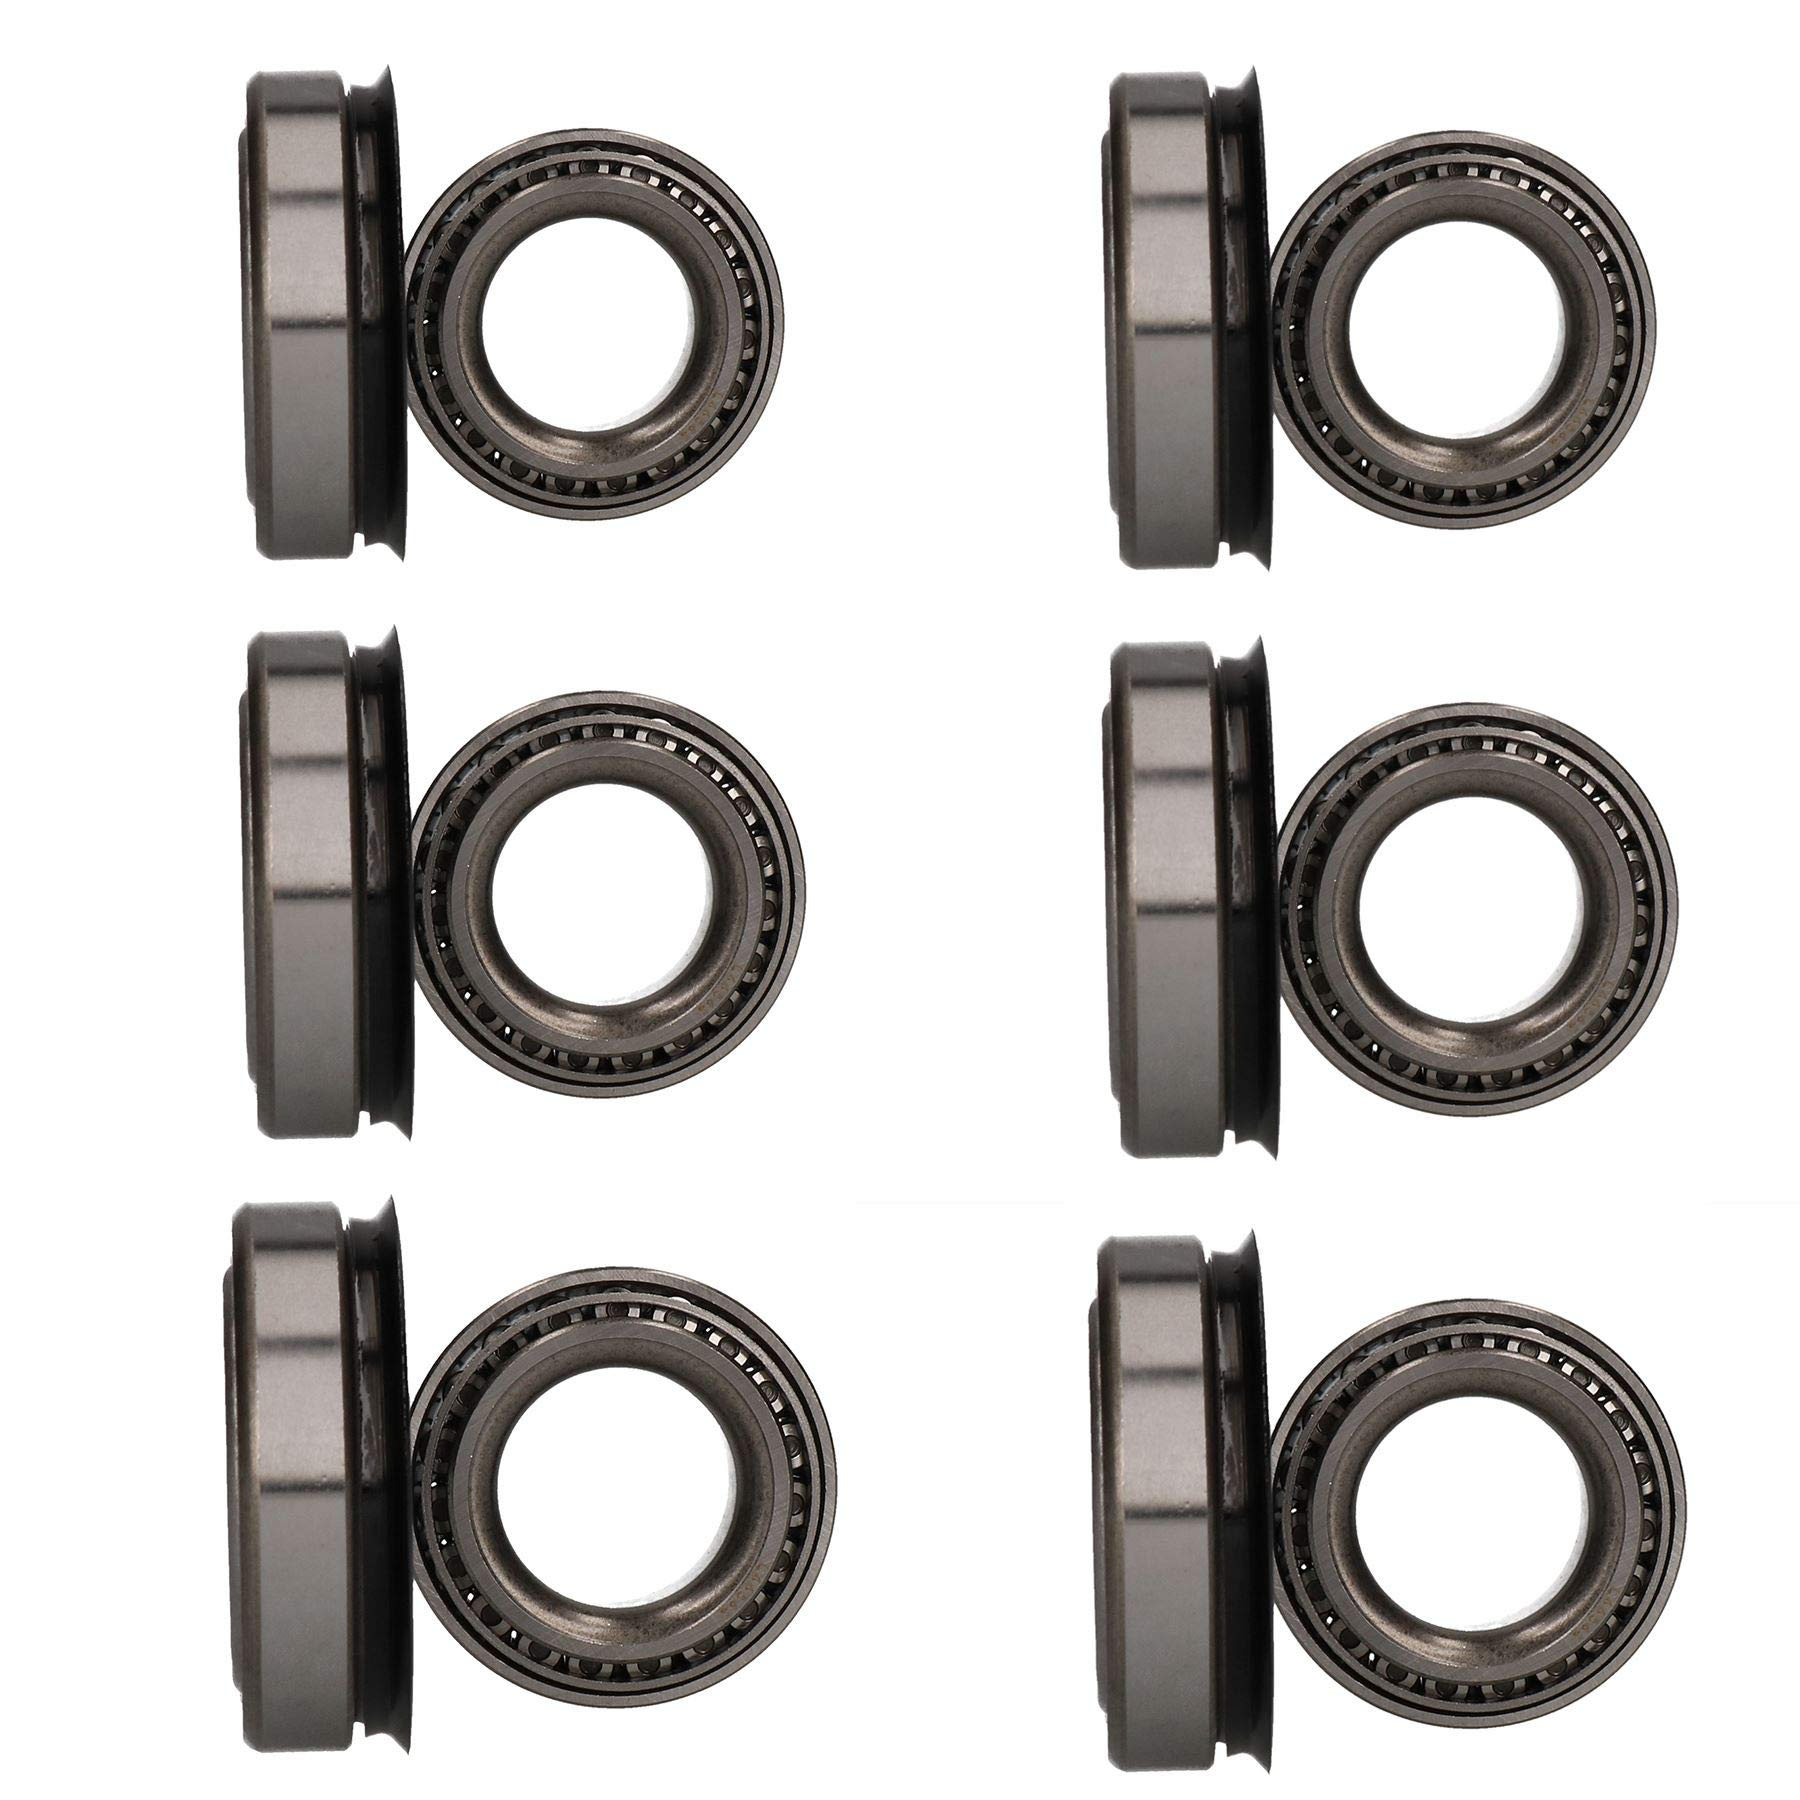 AB Tools 6 x Wheel Bearing Kit for Indespension 3500kg Tri-Axle Car Transporter Trailer by AB Tools